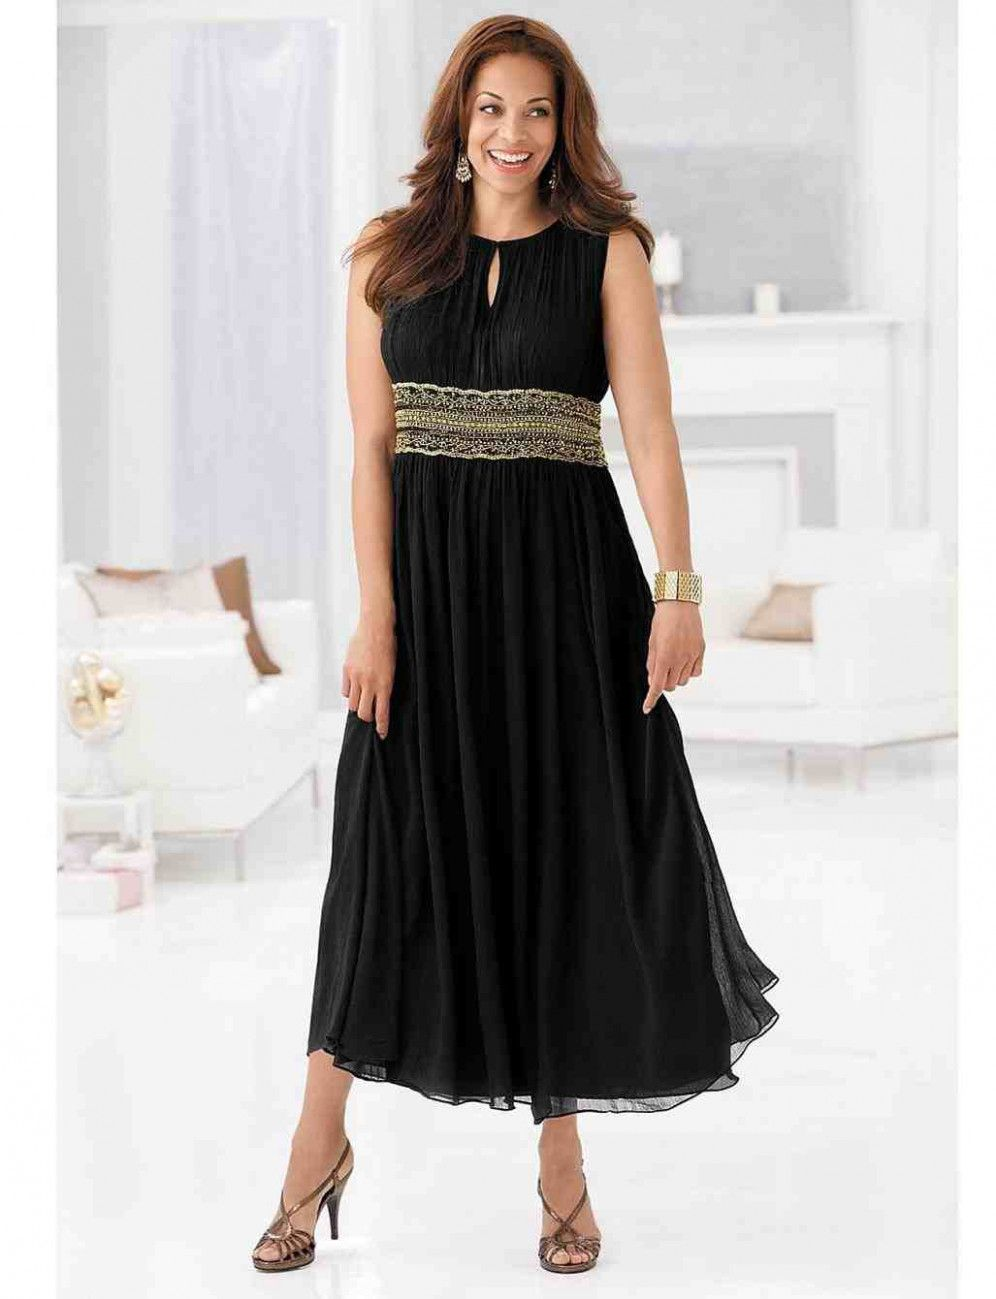 Winter Wedding Guest What To Wear Dresses Womens Dresses Fashion [ 1299 x 996 Pixel ]